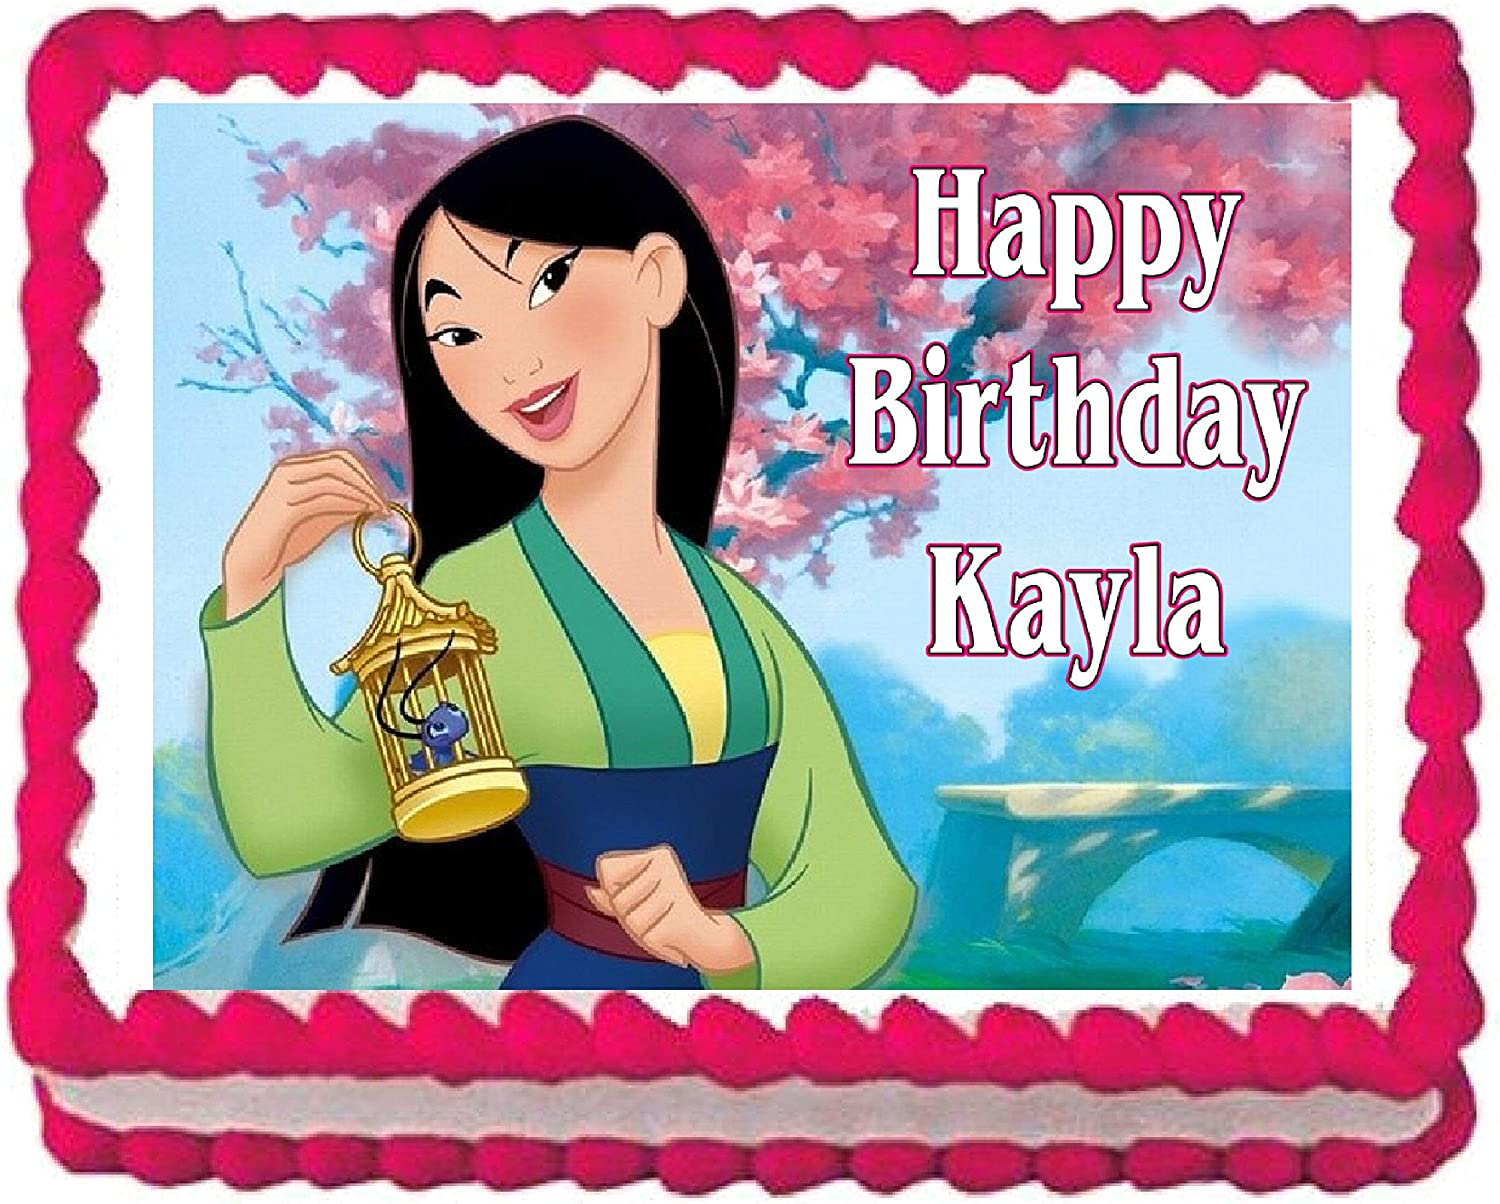 Excellent Amazon Com Mulan Edible Cake Image Cake Topper Decoration Funny Birthday Cards Online Bapapcheapnameinfo